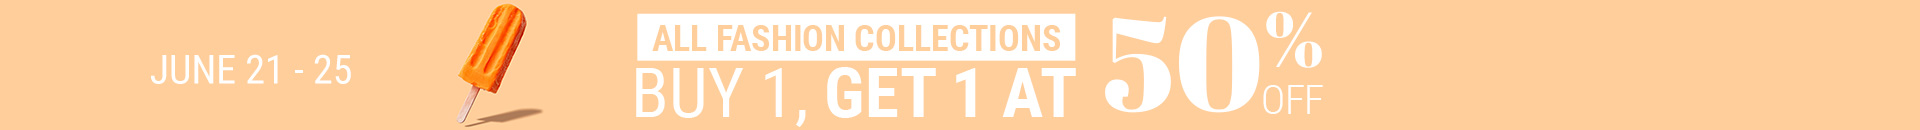 All fashion collections Buy 1, get 1 50% off